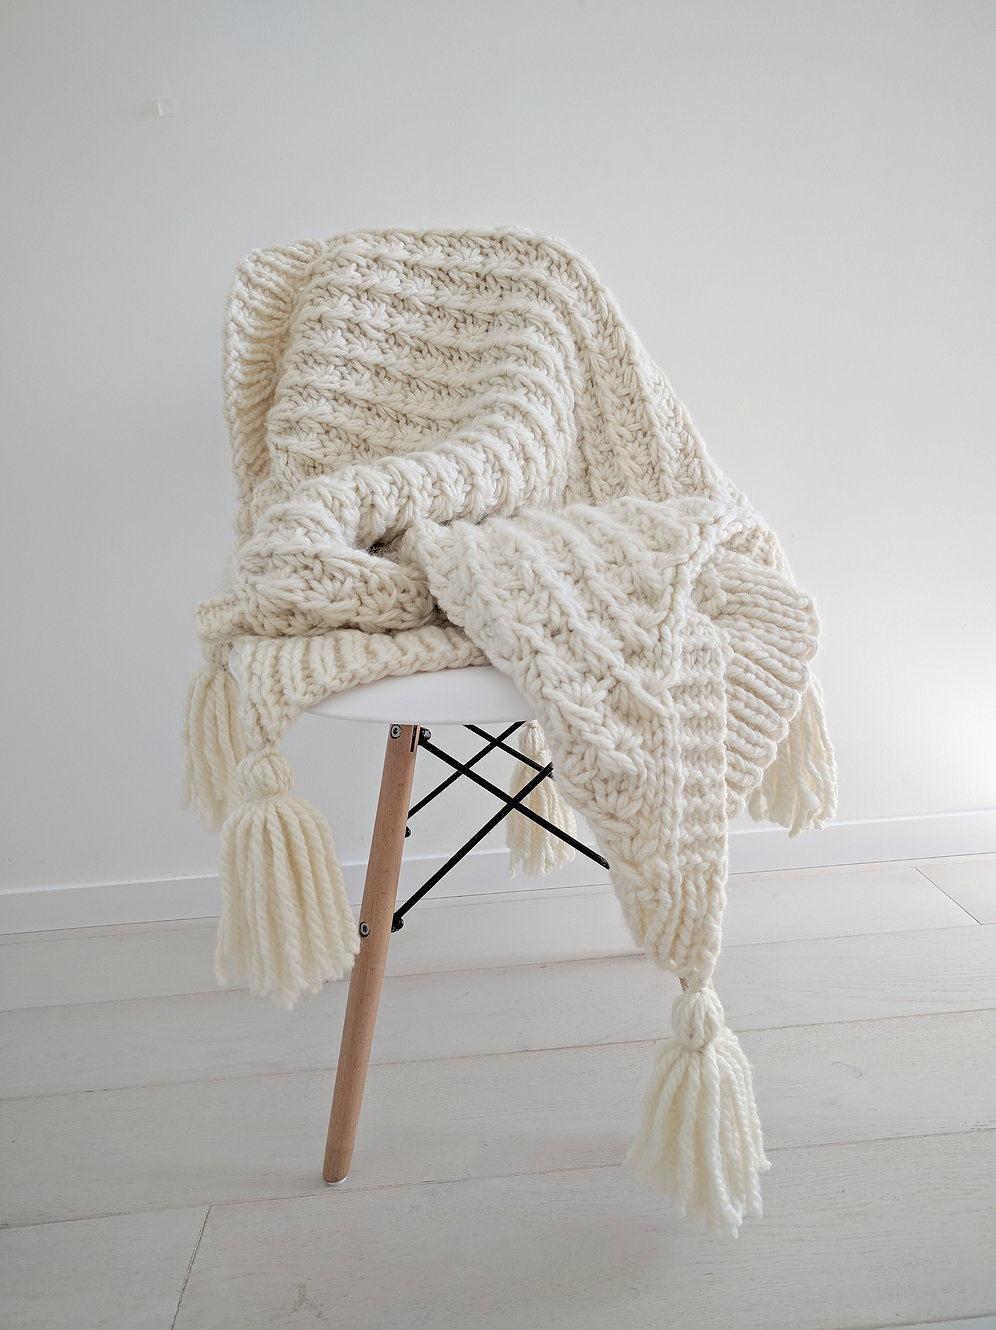 Marshmallow Throw - Chunky Knit Blanket Pattern | The Snugglery